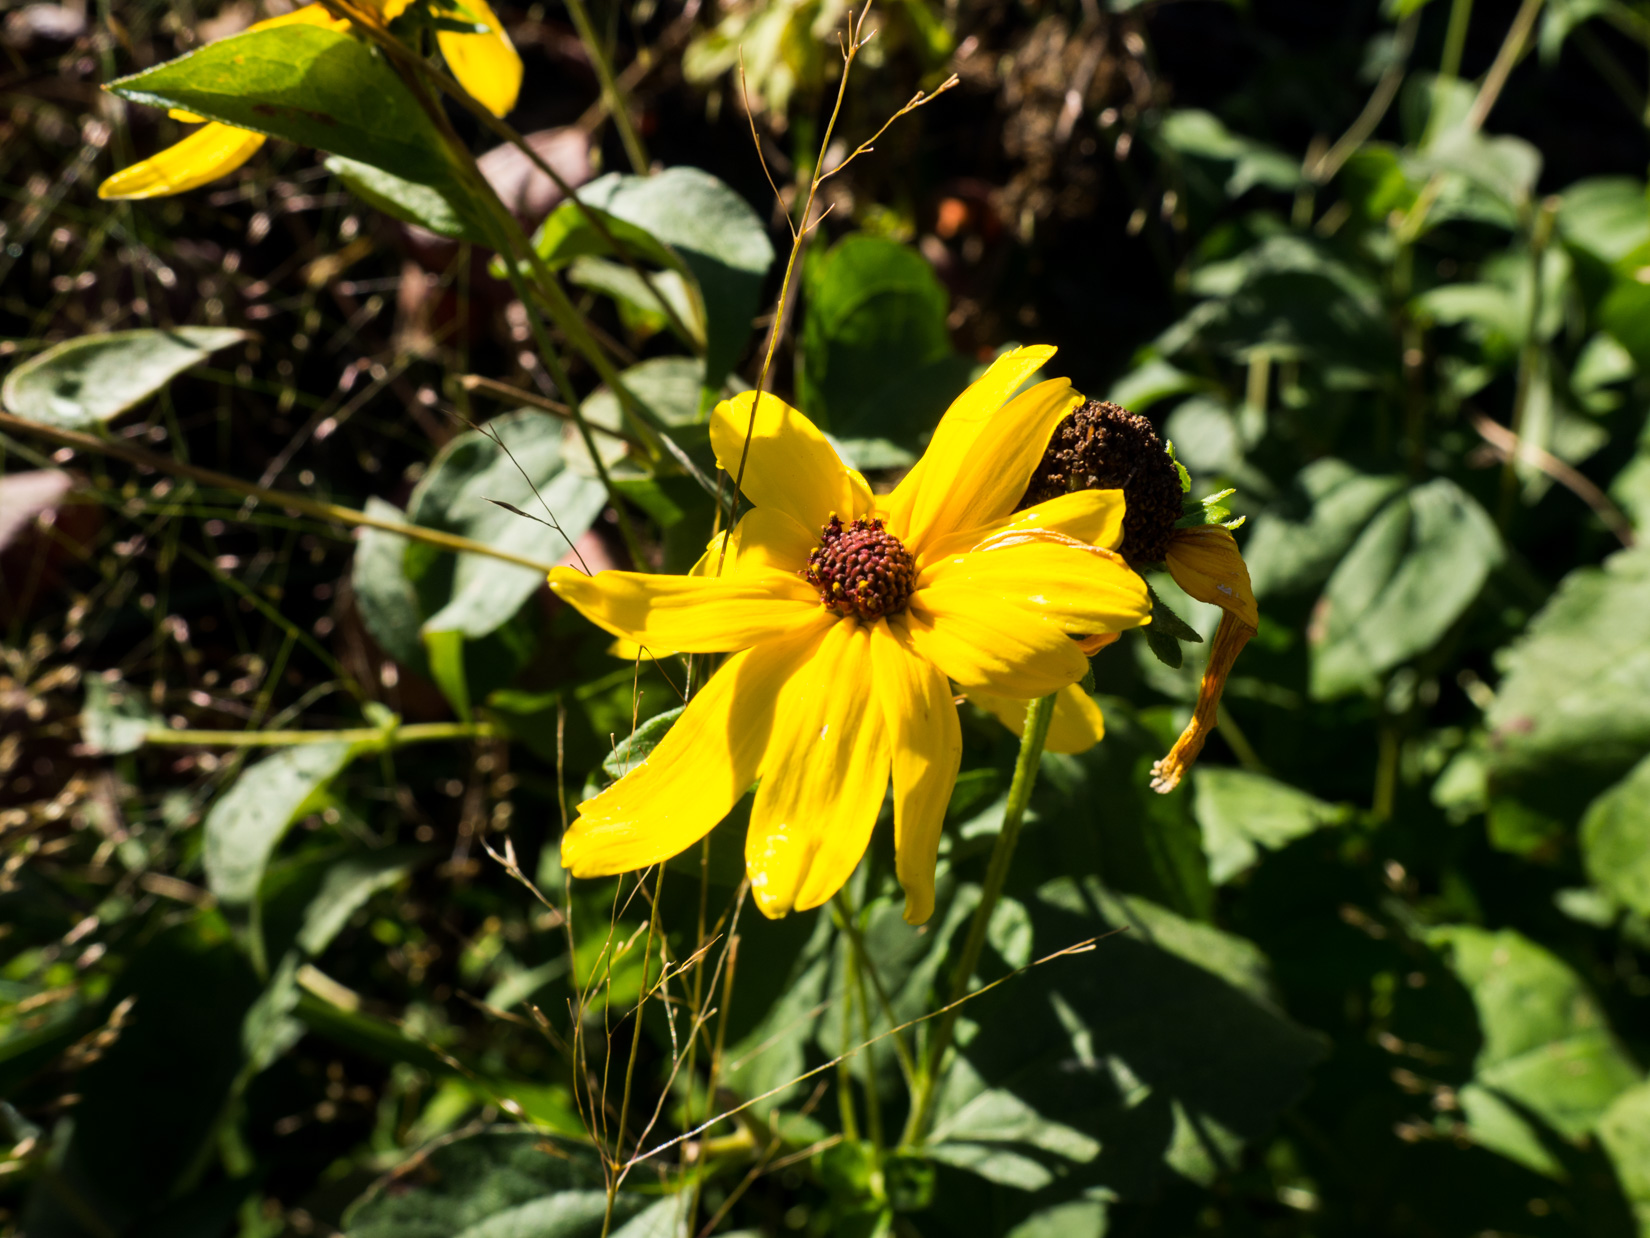 Yellow Flower in Sun and Shadows